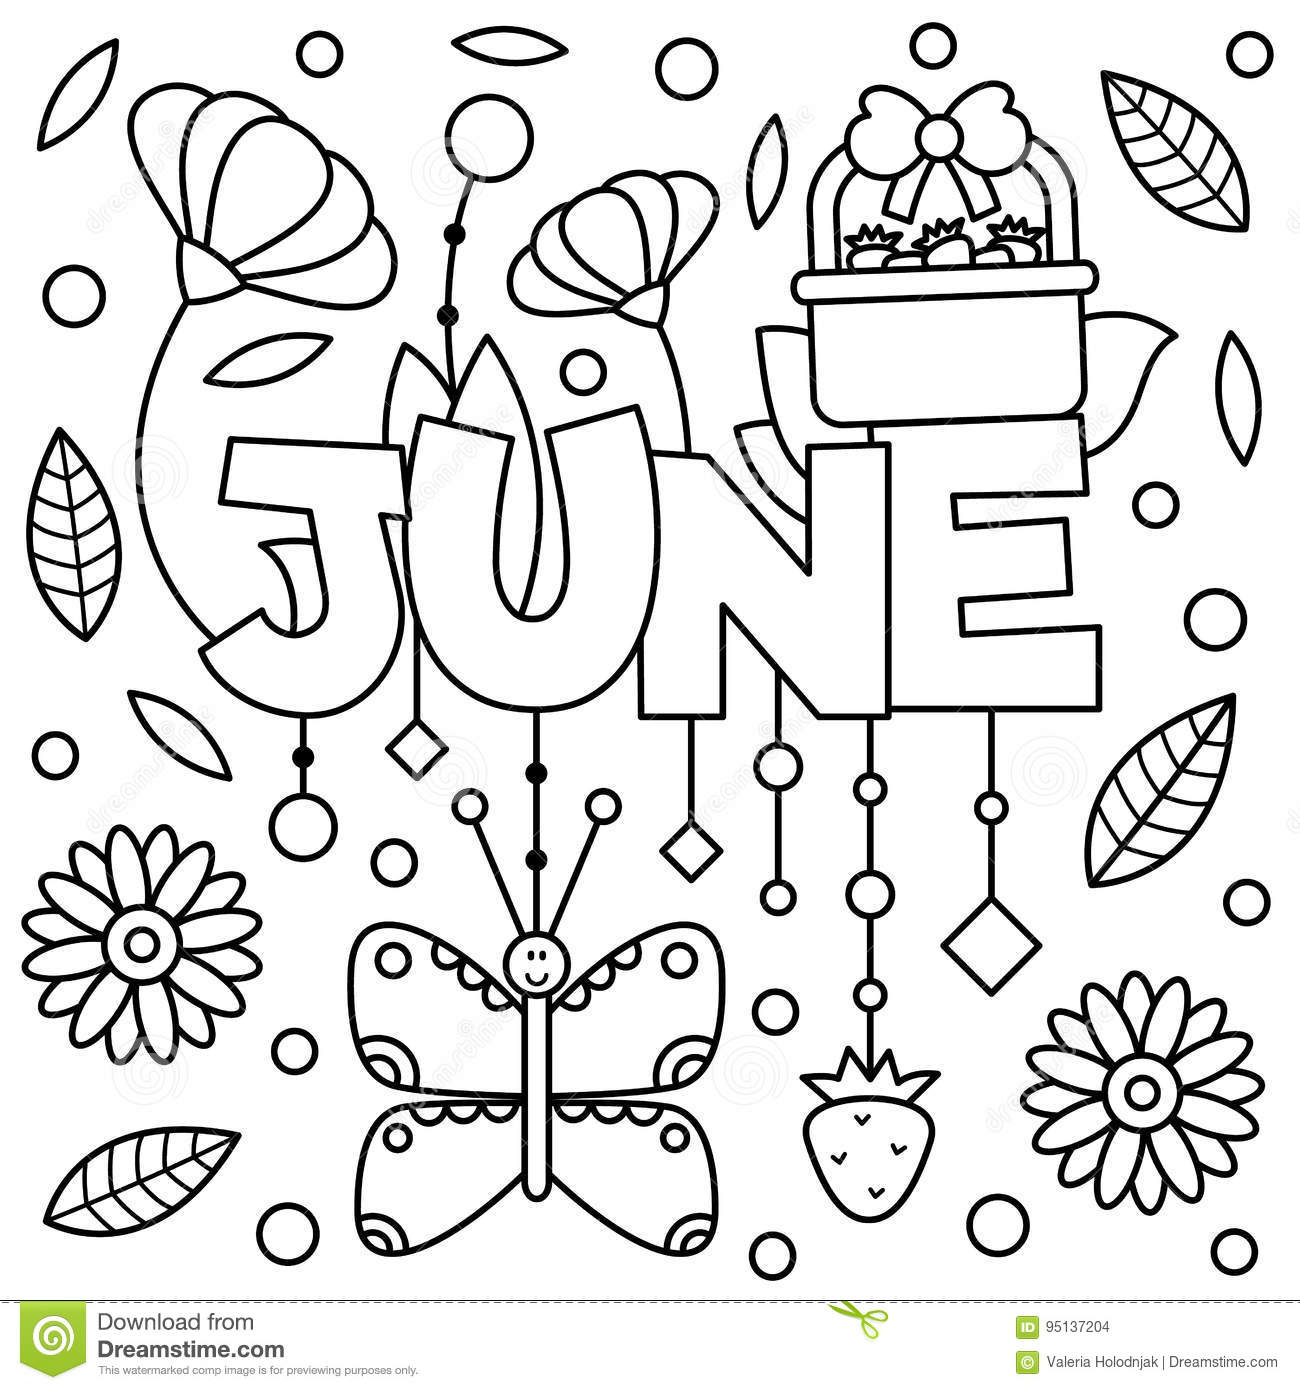 Black And White Illustration. Coloring Page. Stock Vector.